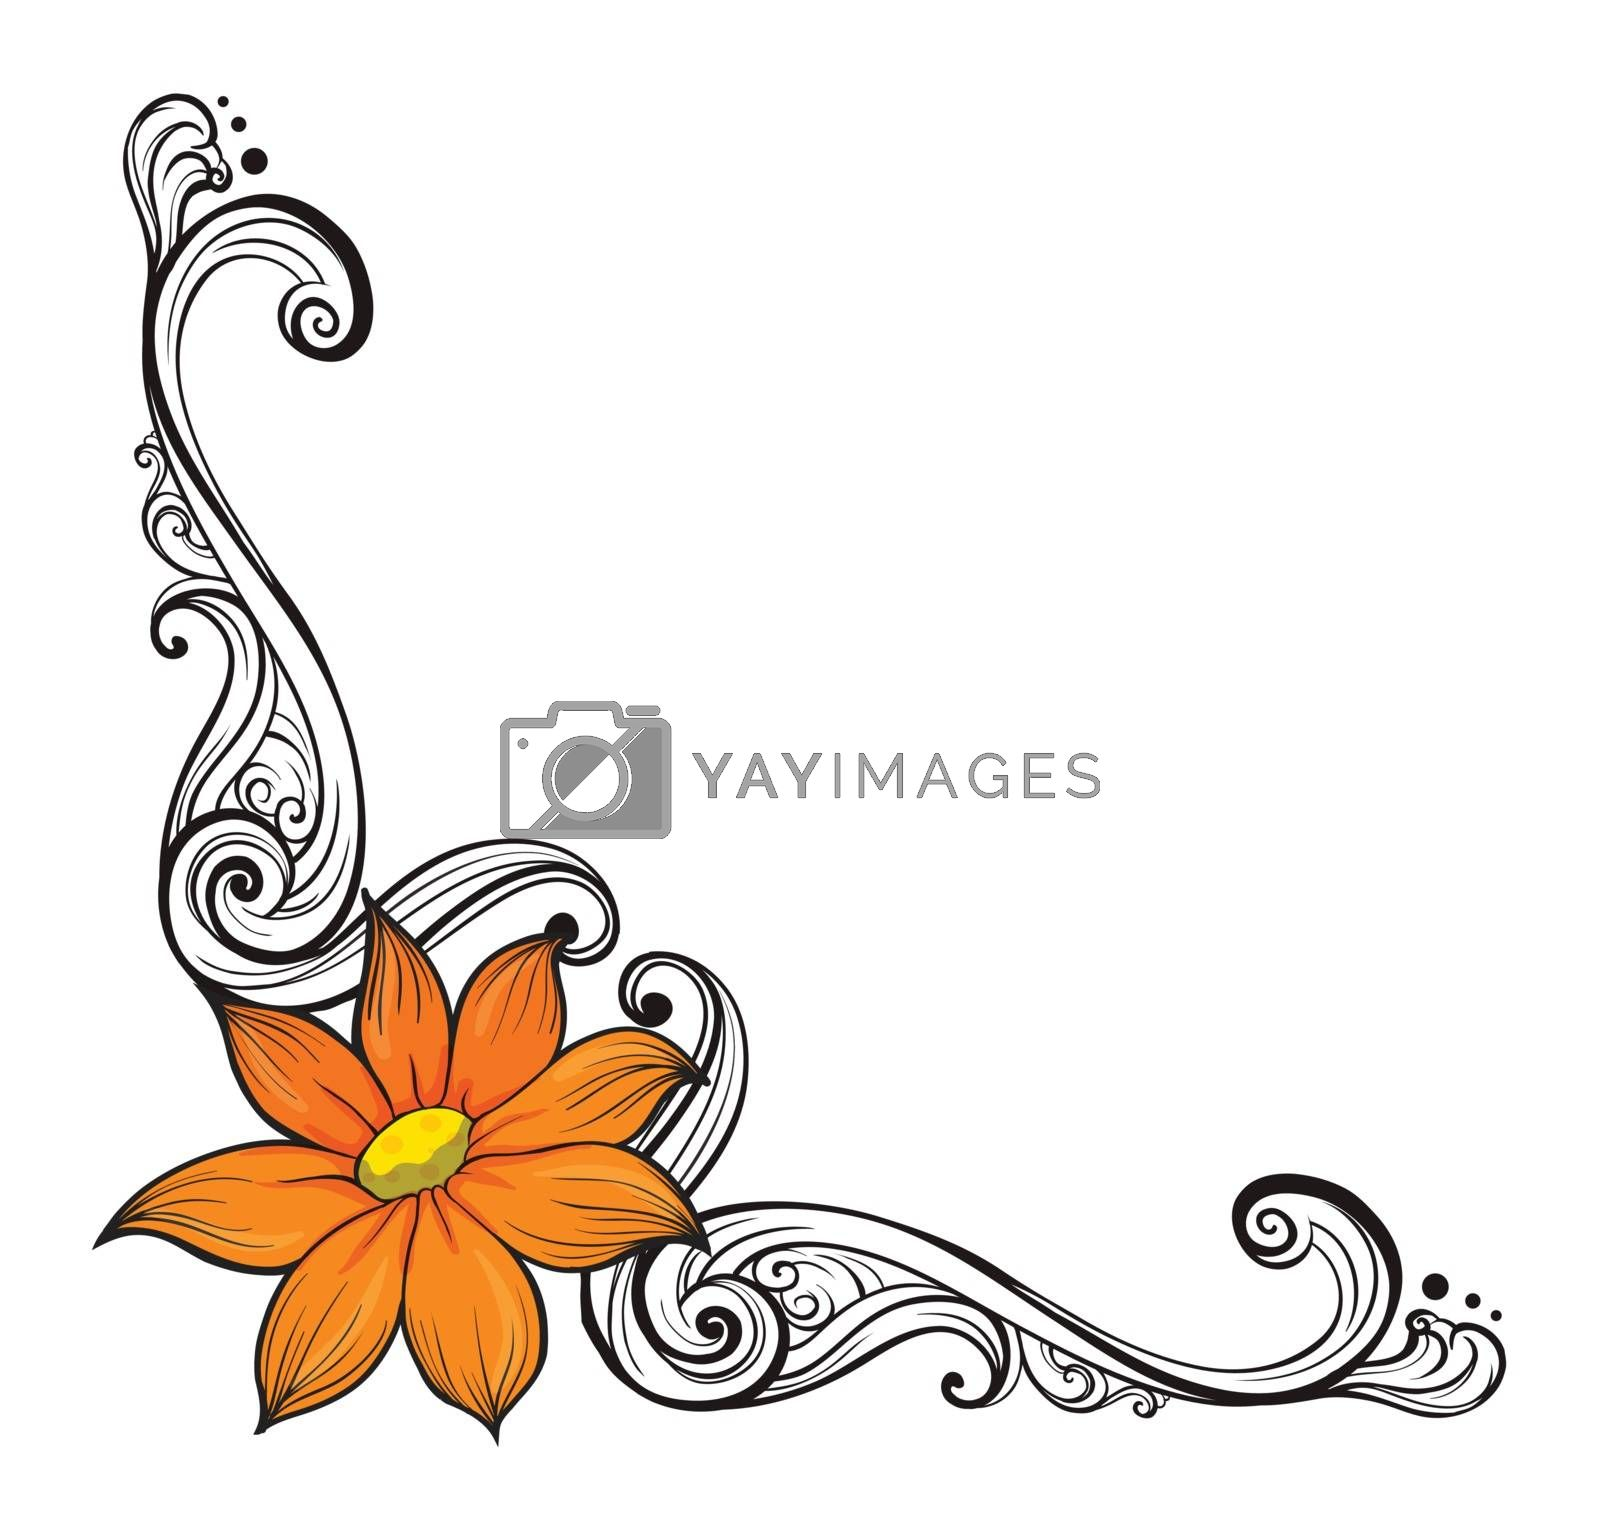 Illustration of a border with an orange flower on a white background